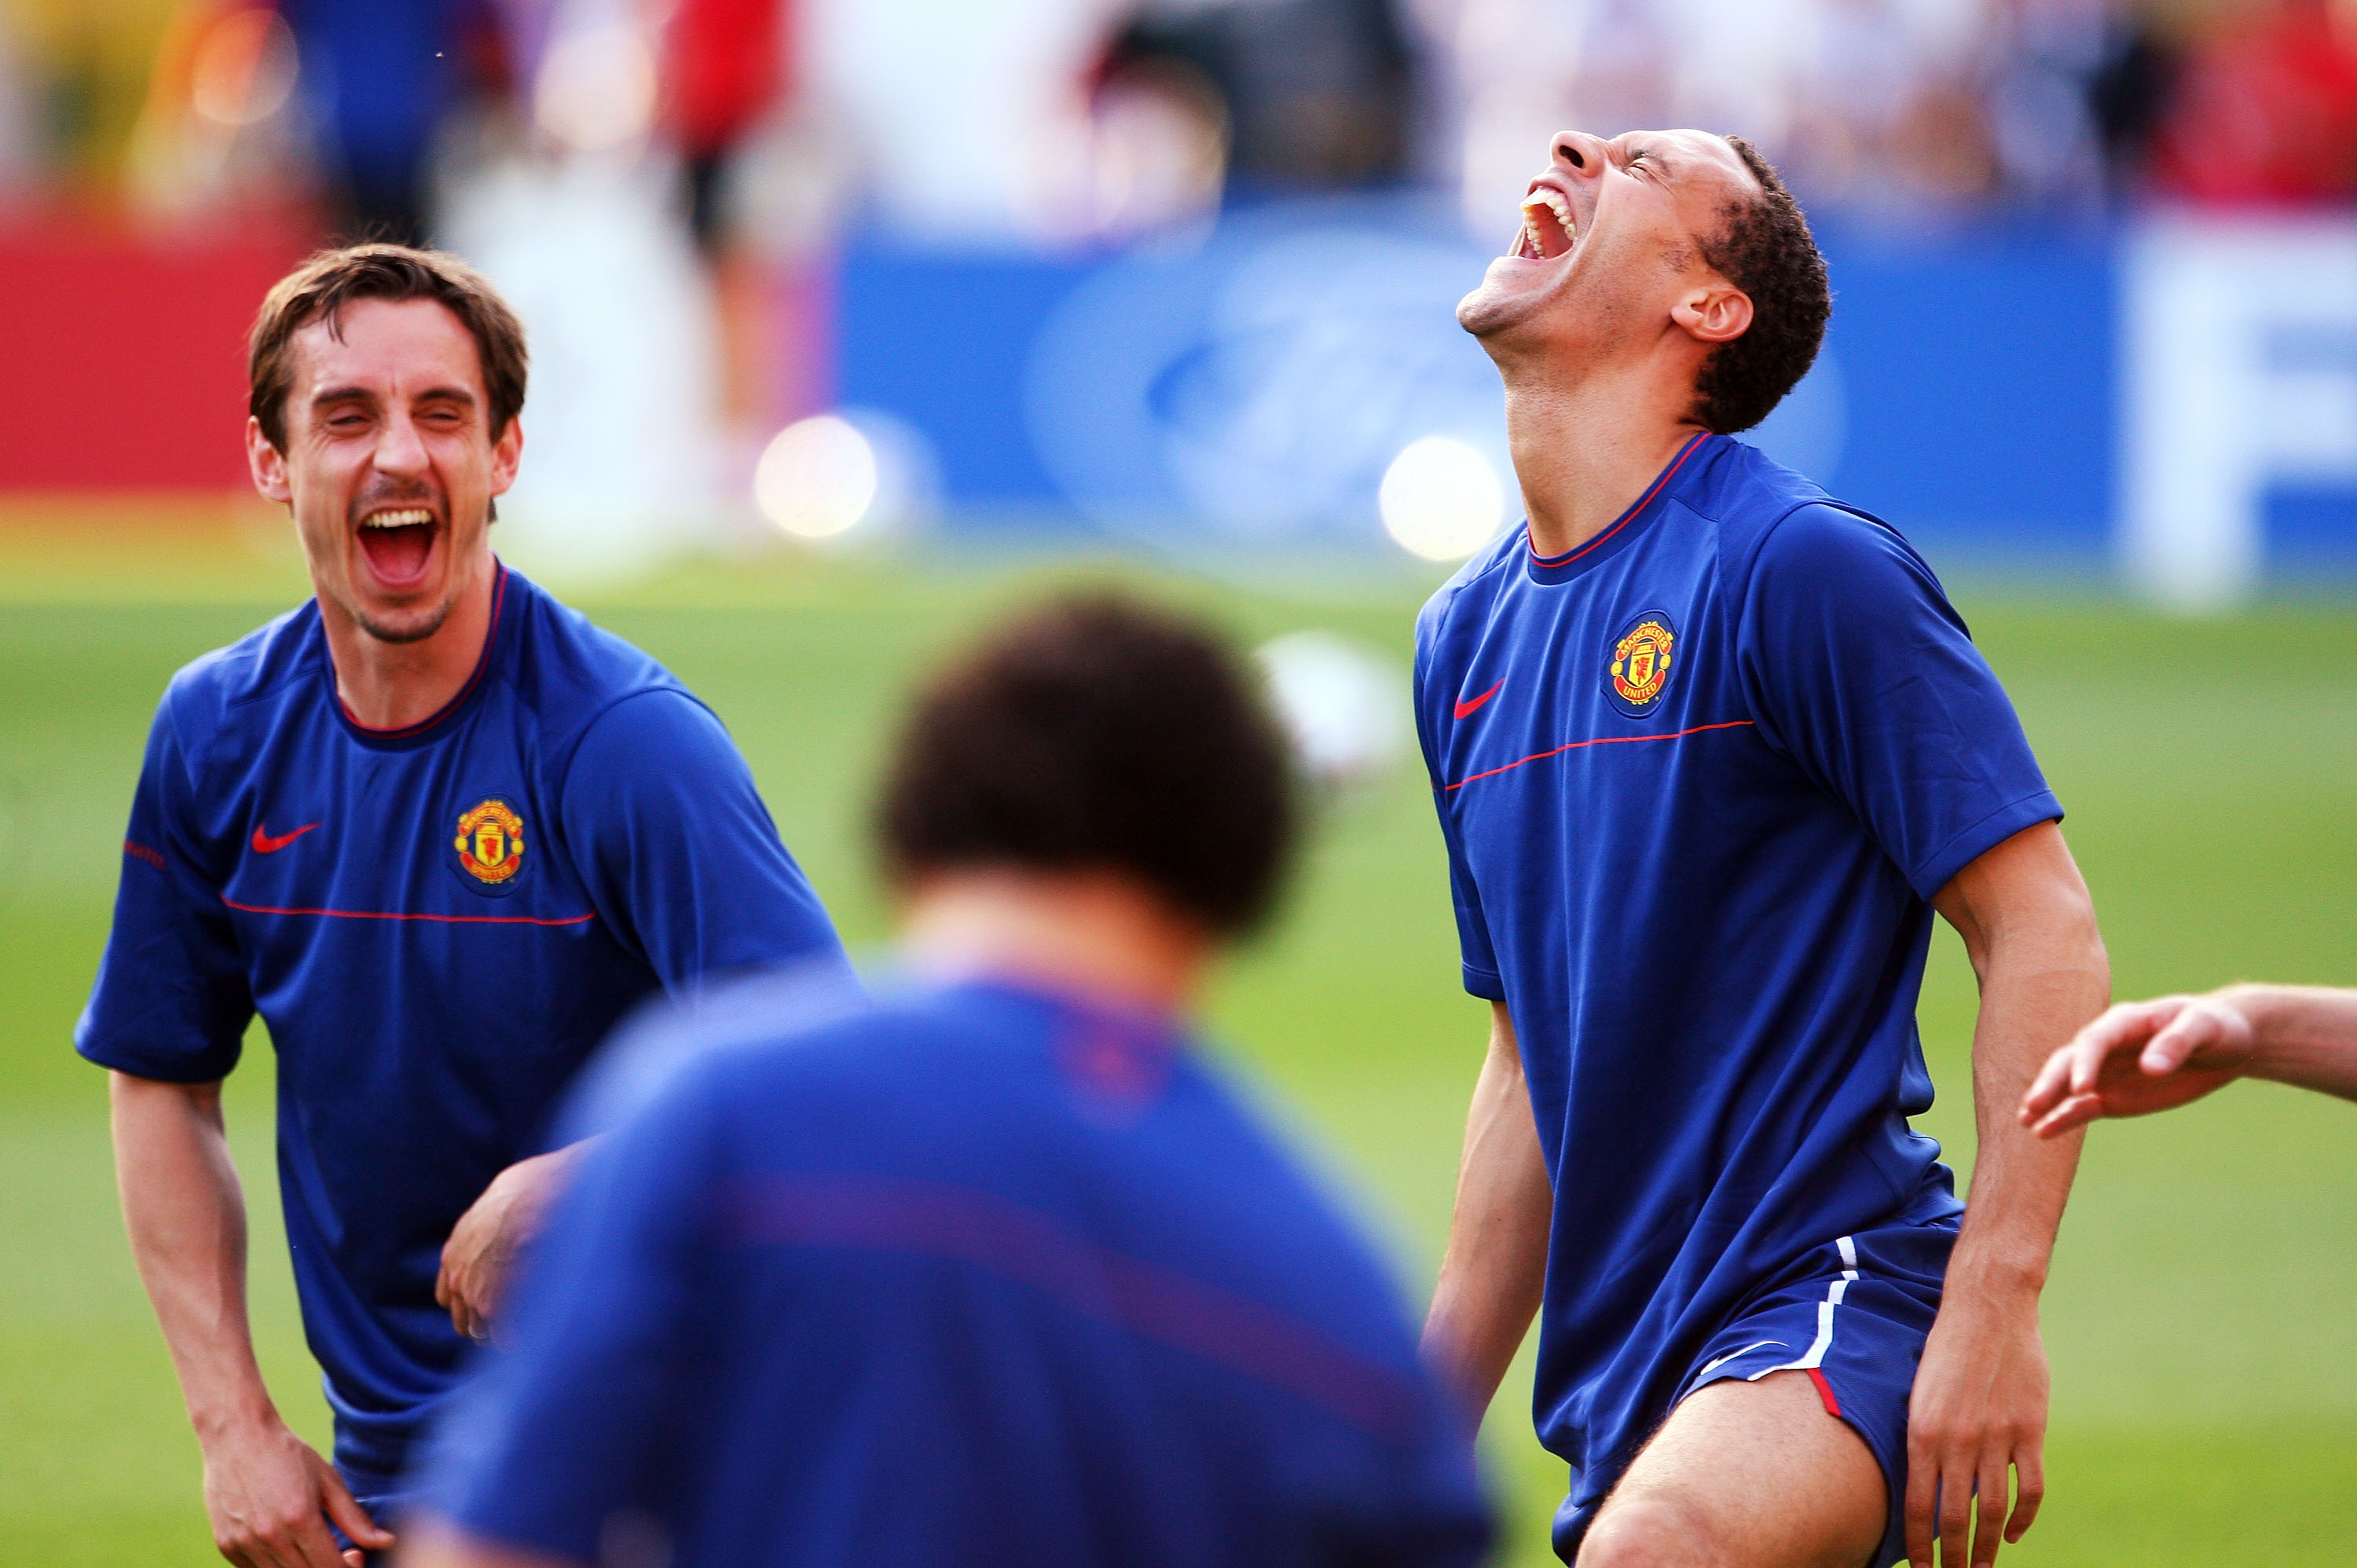 ROME - MAY 26:  Rio Ferdinand and Gary Neville of Manchester United laugh as they attend the Manchester United training session prior to UEFA Champions League Final versus Barcelona at the Stadio Olimpico on May 26, 2009 in Rome, Italy.  (Photo by Laurenc